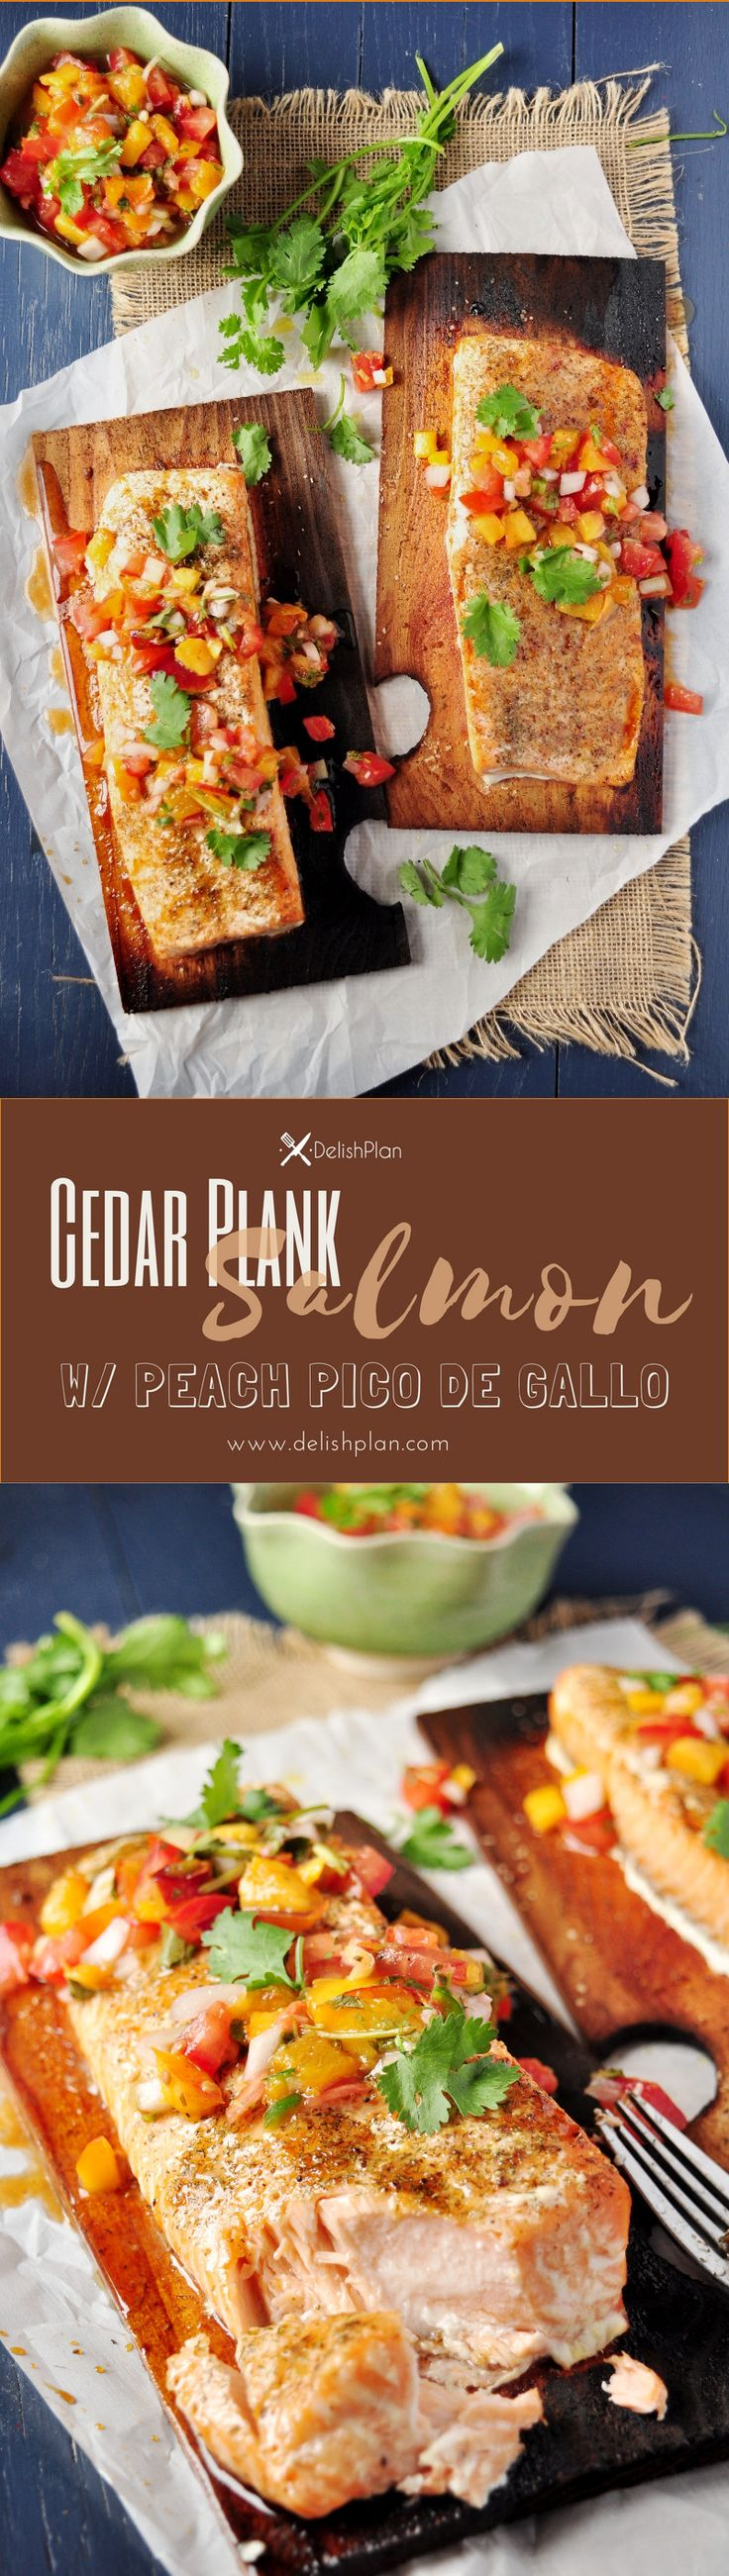 Grilled salmon on cedar planks that are soaked in white wine and elegantly served with peach pico de gallo for a greatly refreshing combination. Read more at  http://www.delishplan.com/cedar-plank-salm…ch-pico-de-gallo/